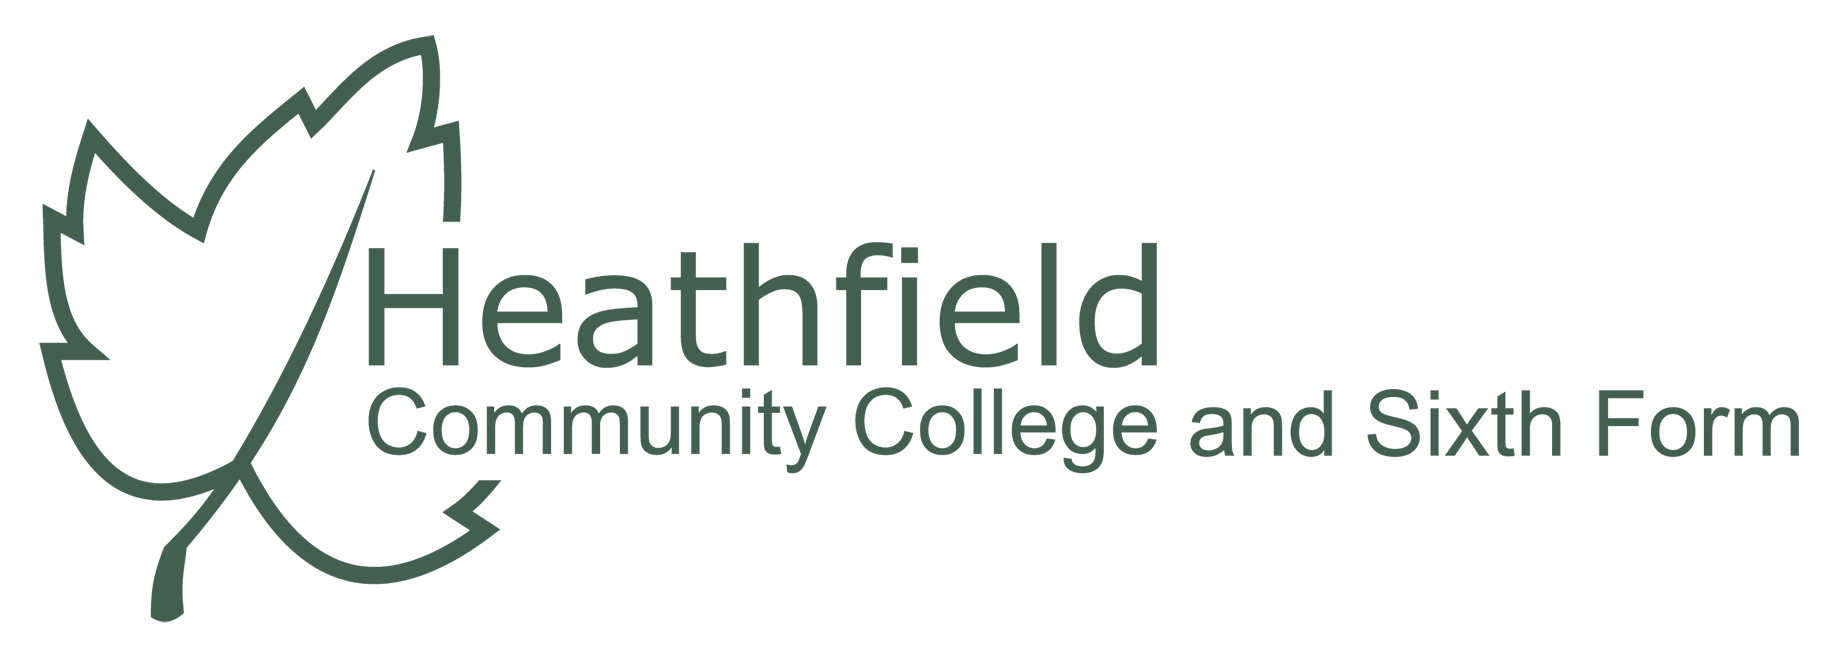 Heathfield Community College, Heathfield logo